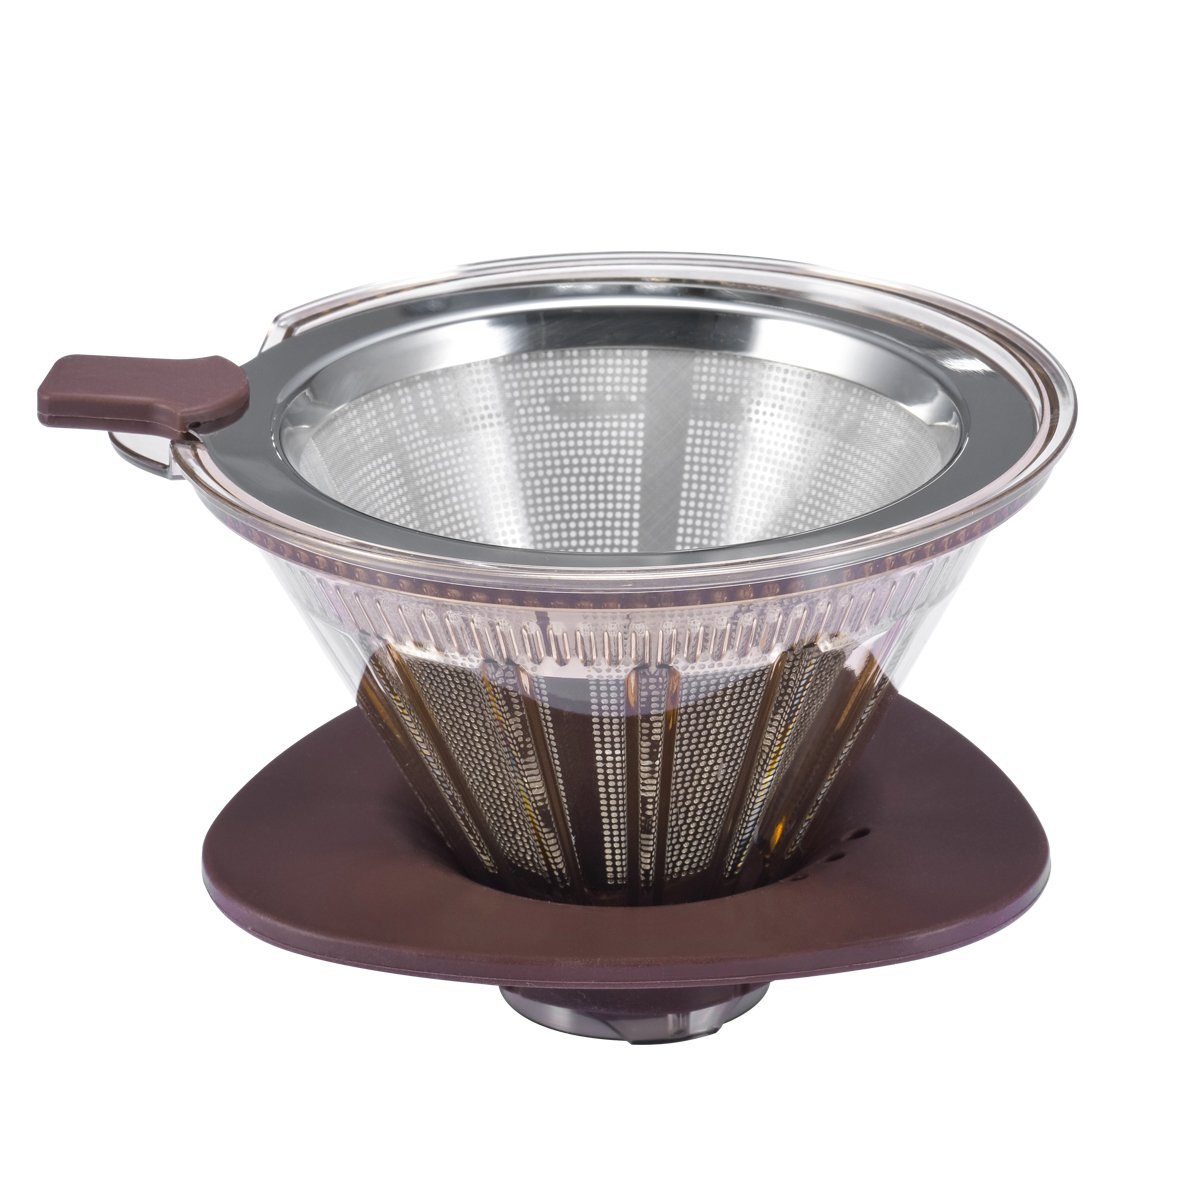 Clever Coffee Dripper, Double Mesh Reusable Coffee Filter with Shut-off Valve and Removable Cup Stand